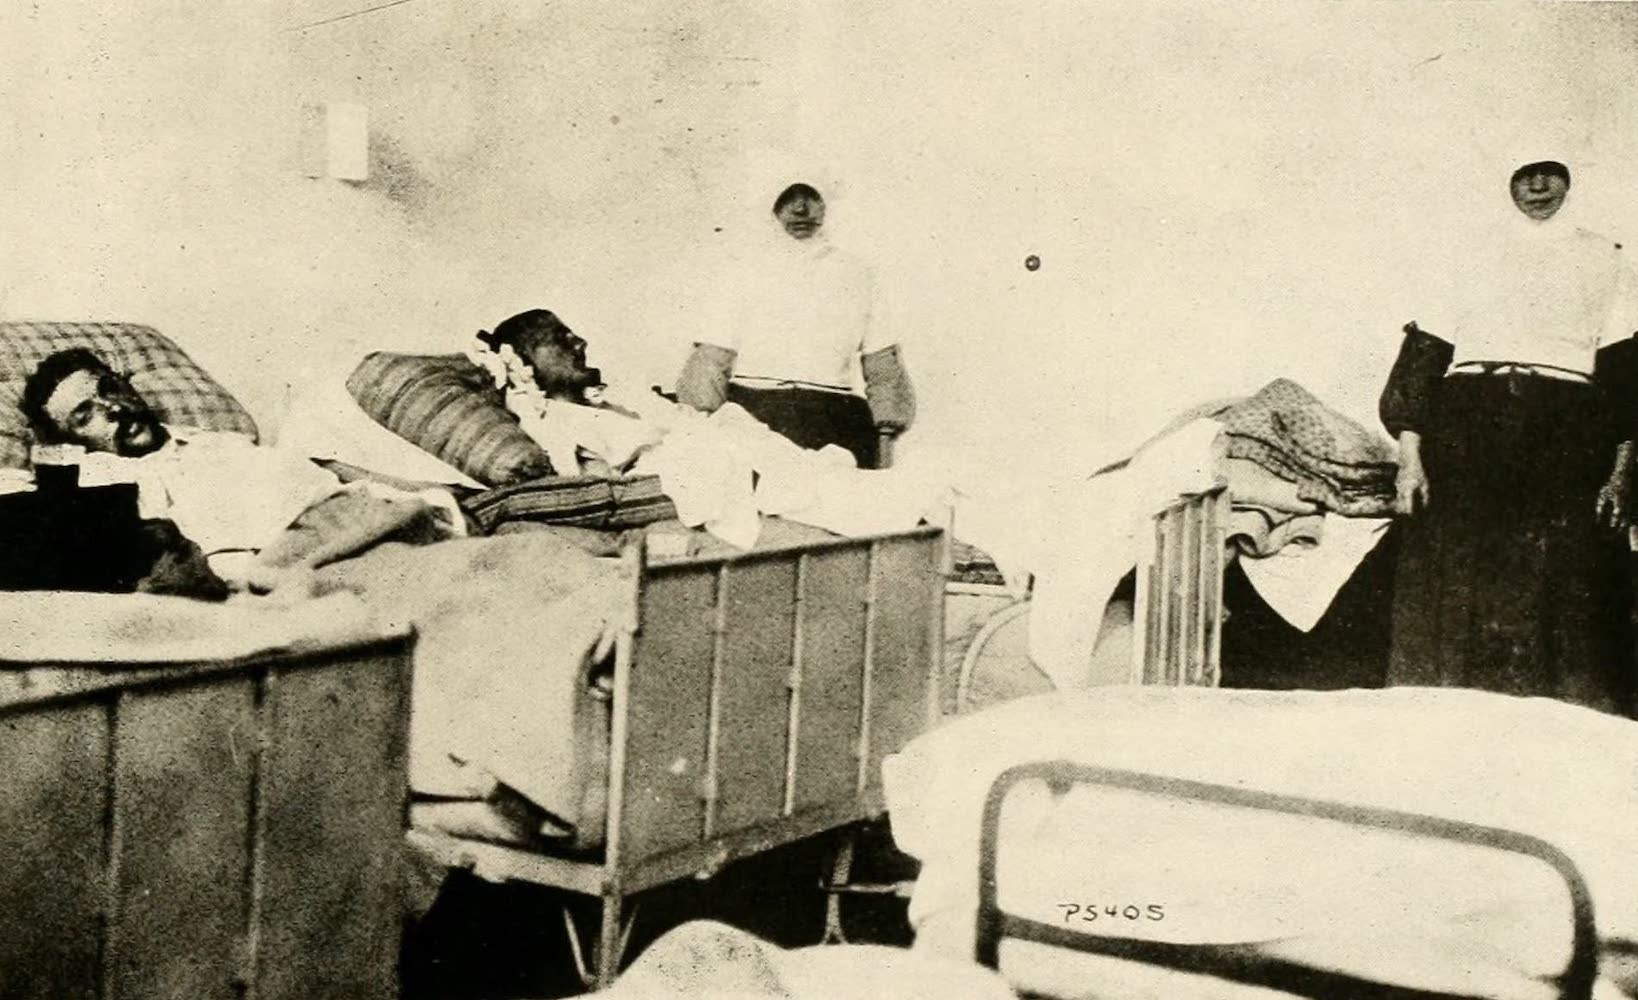 Laird & Lee's World's War Glimpses - Belgian Sisters and Wounded Germans to Whom They are Ministering (1914)